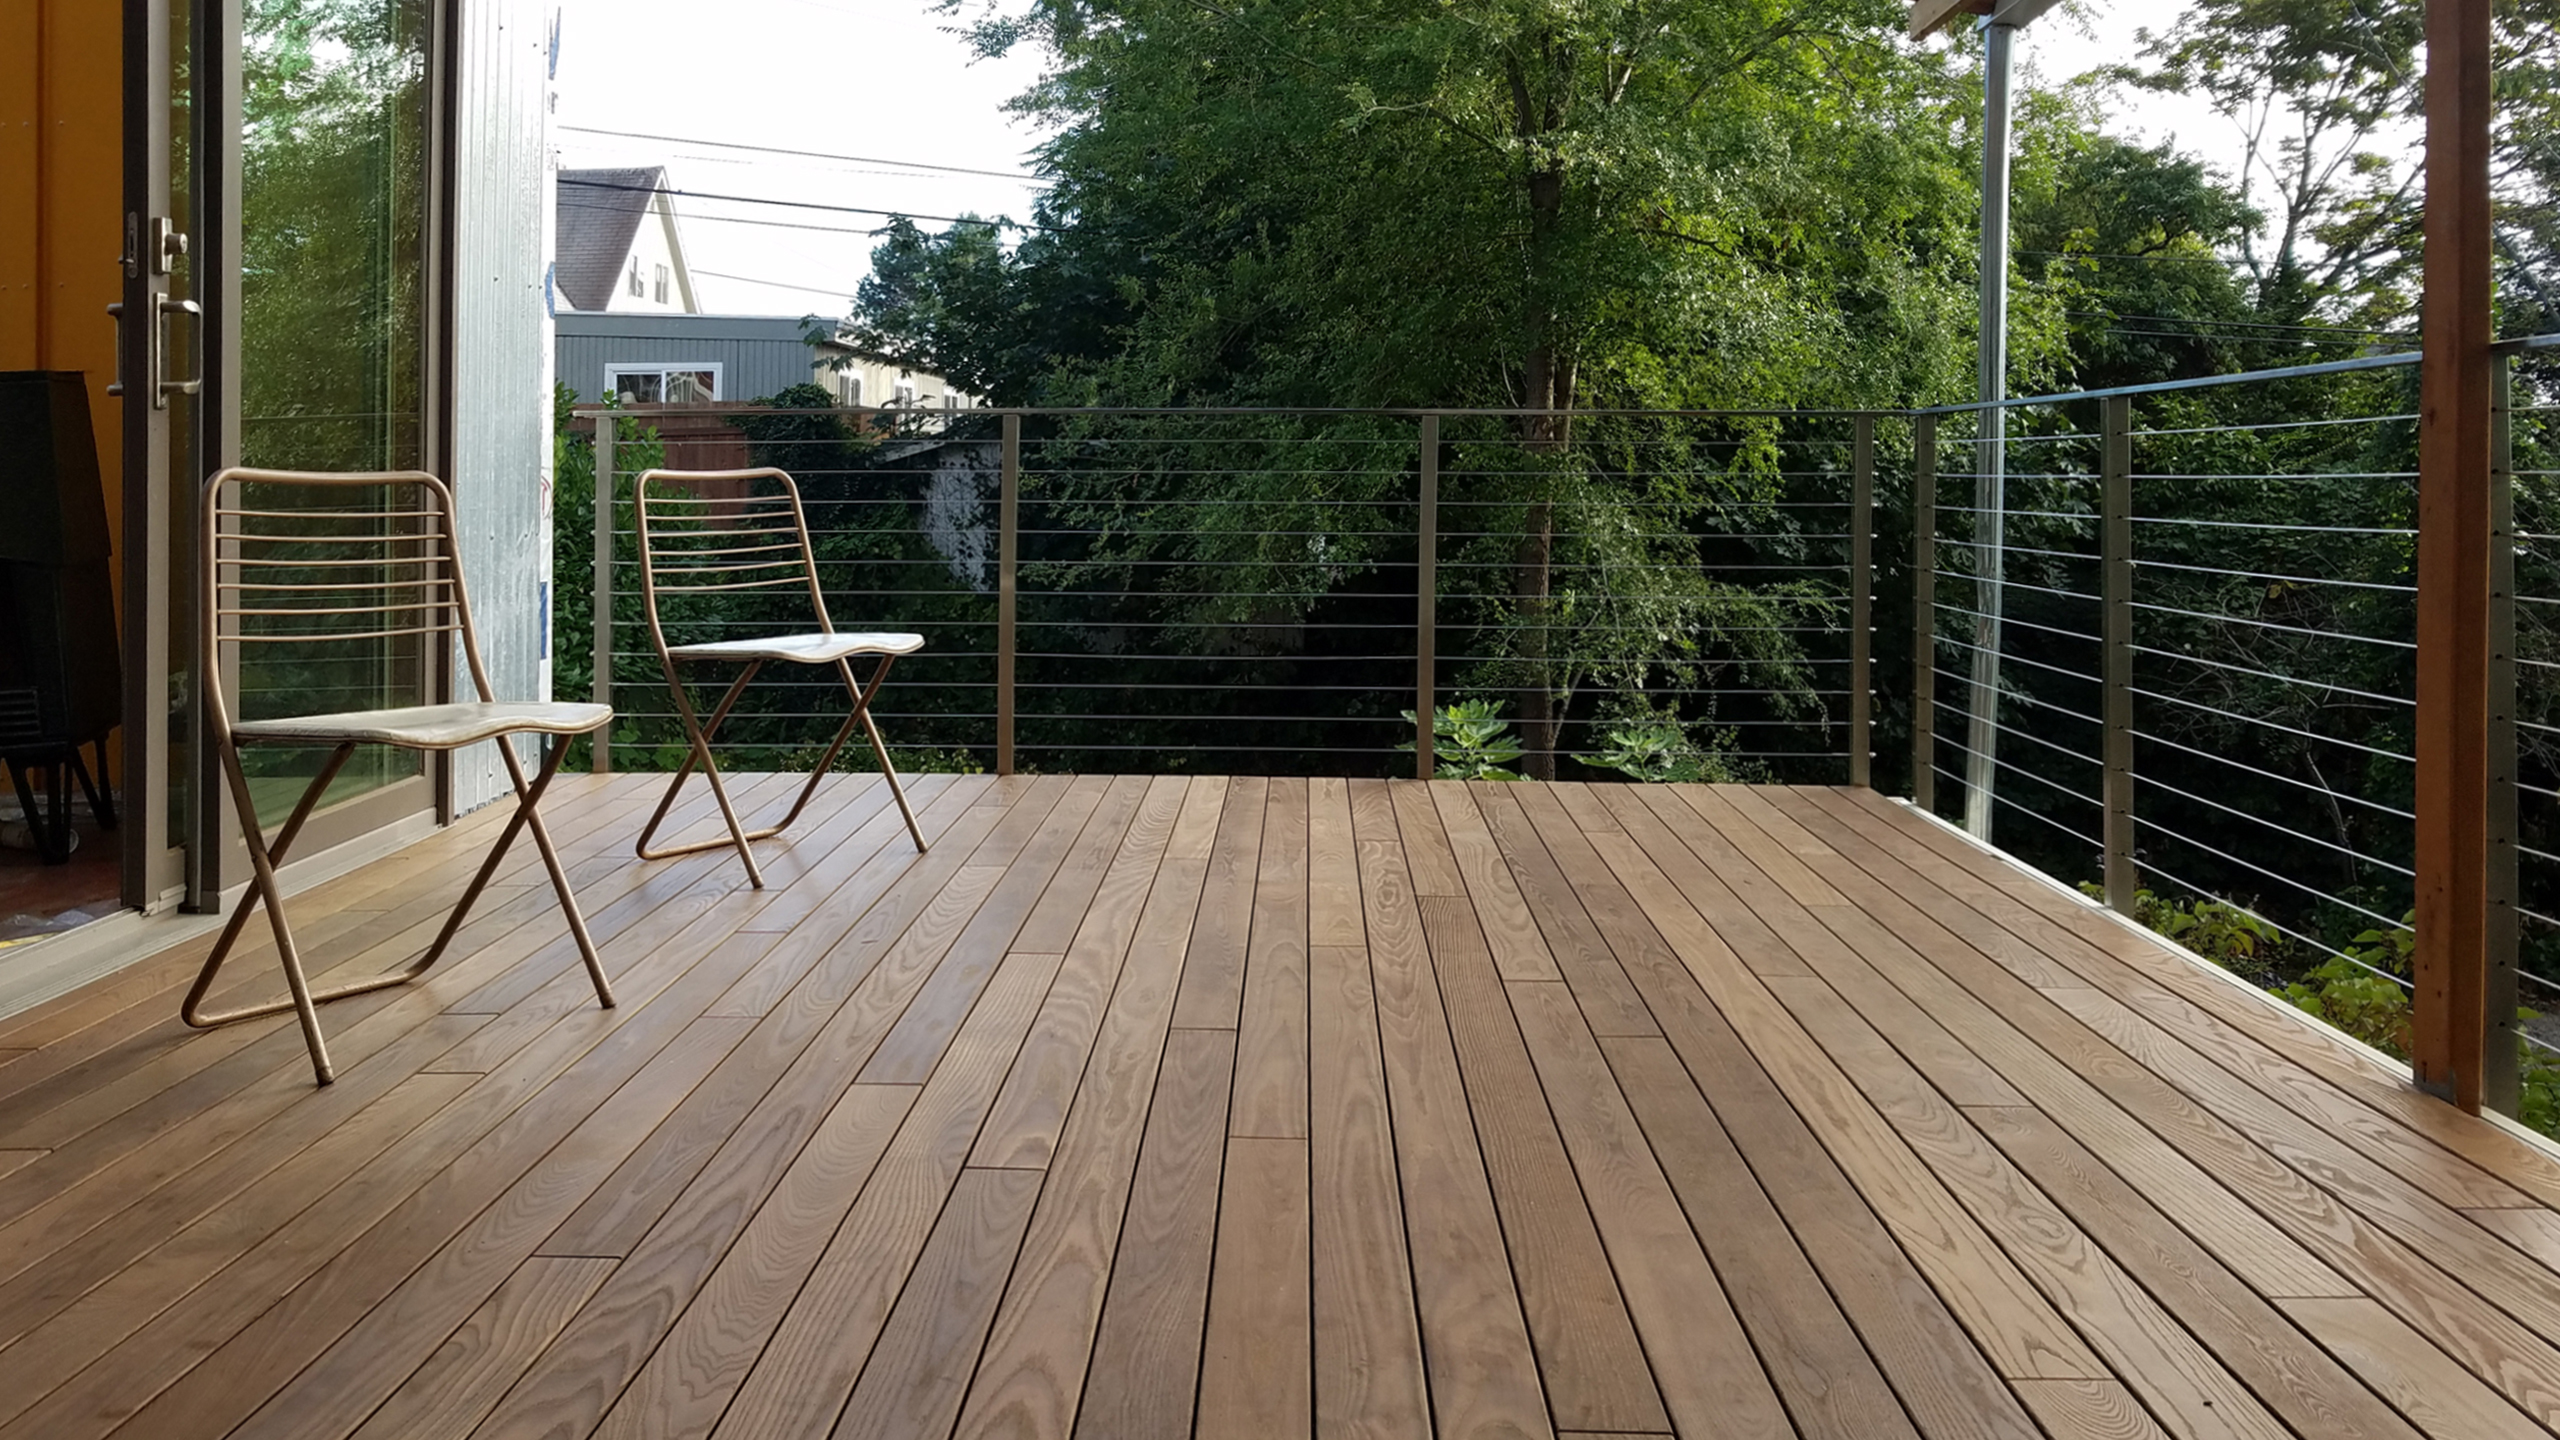 Types of Wood Decks – What Material Should I Use for My Deck  – Board    Vellum 257f853d0